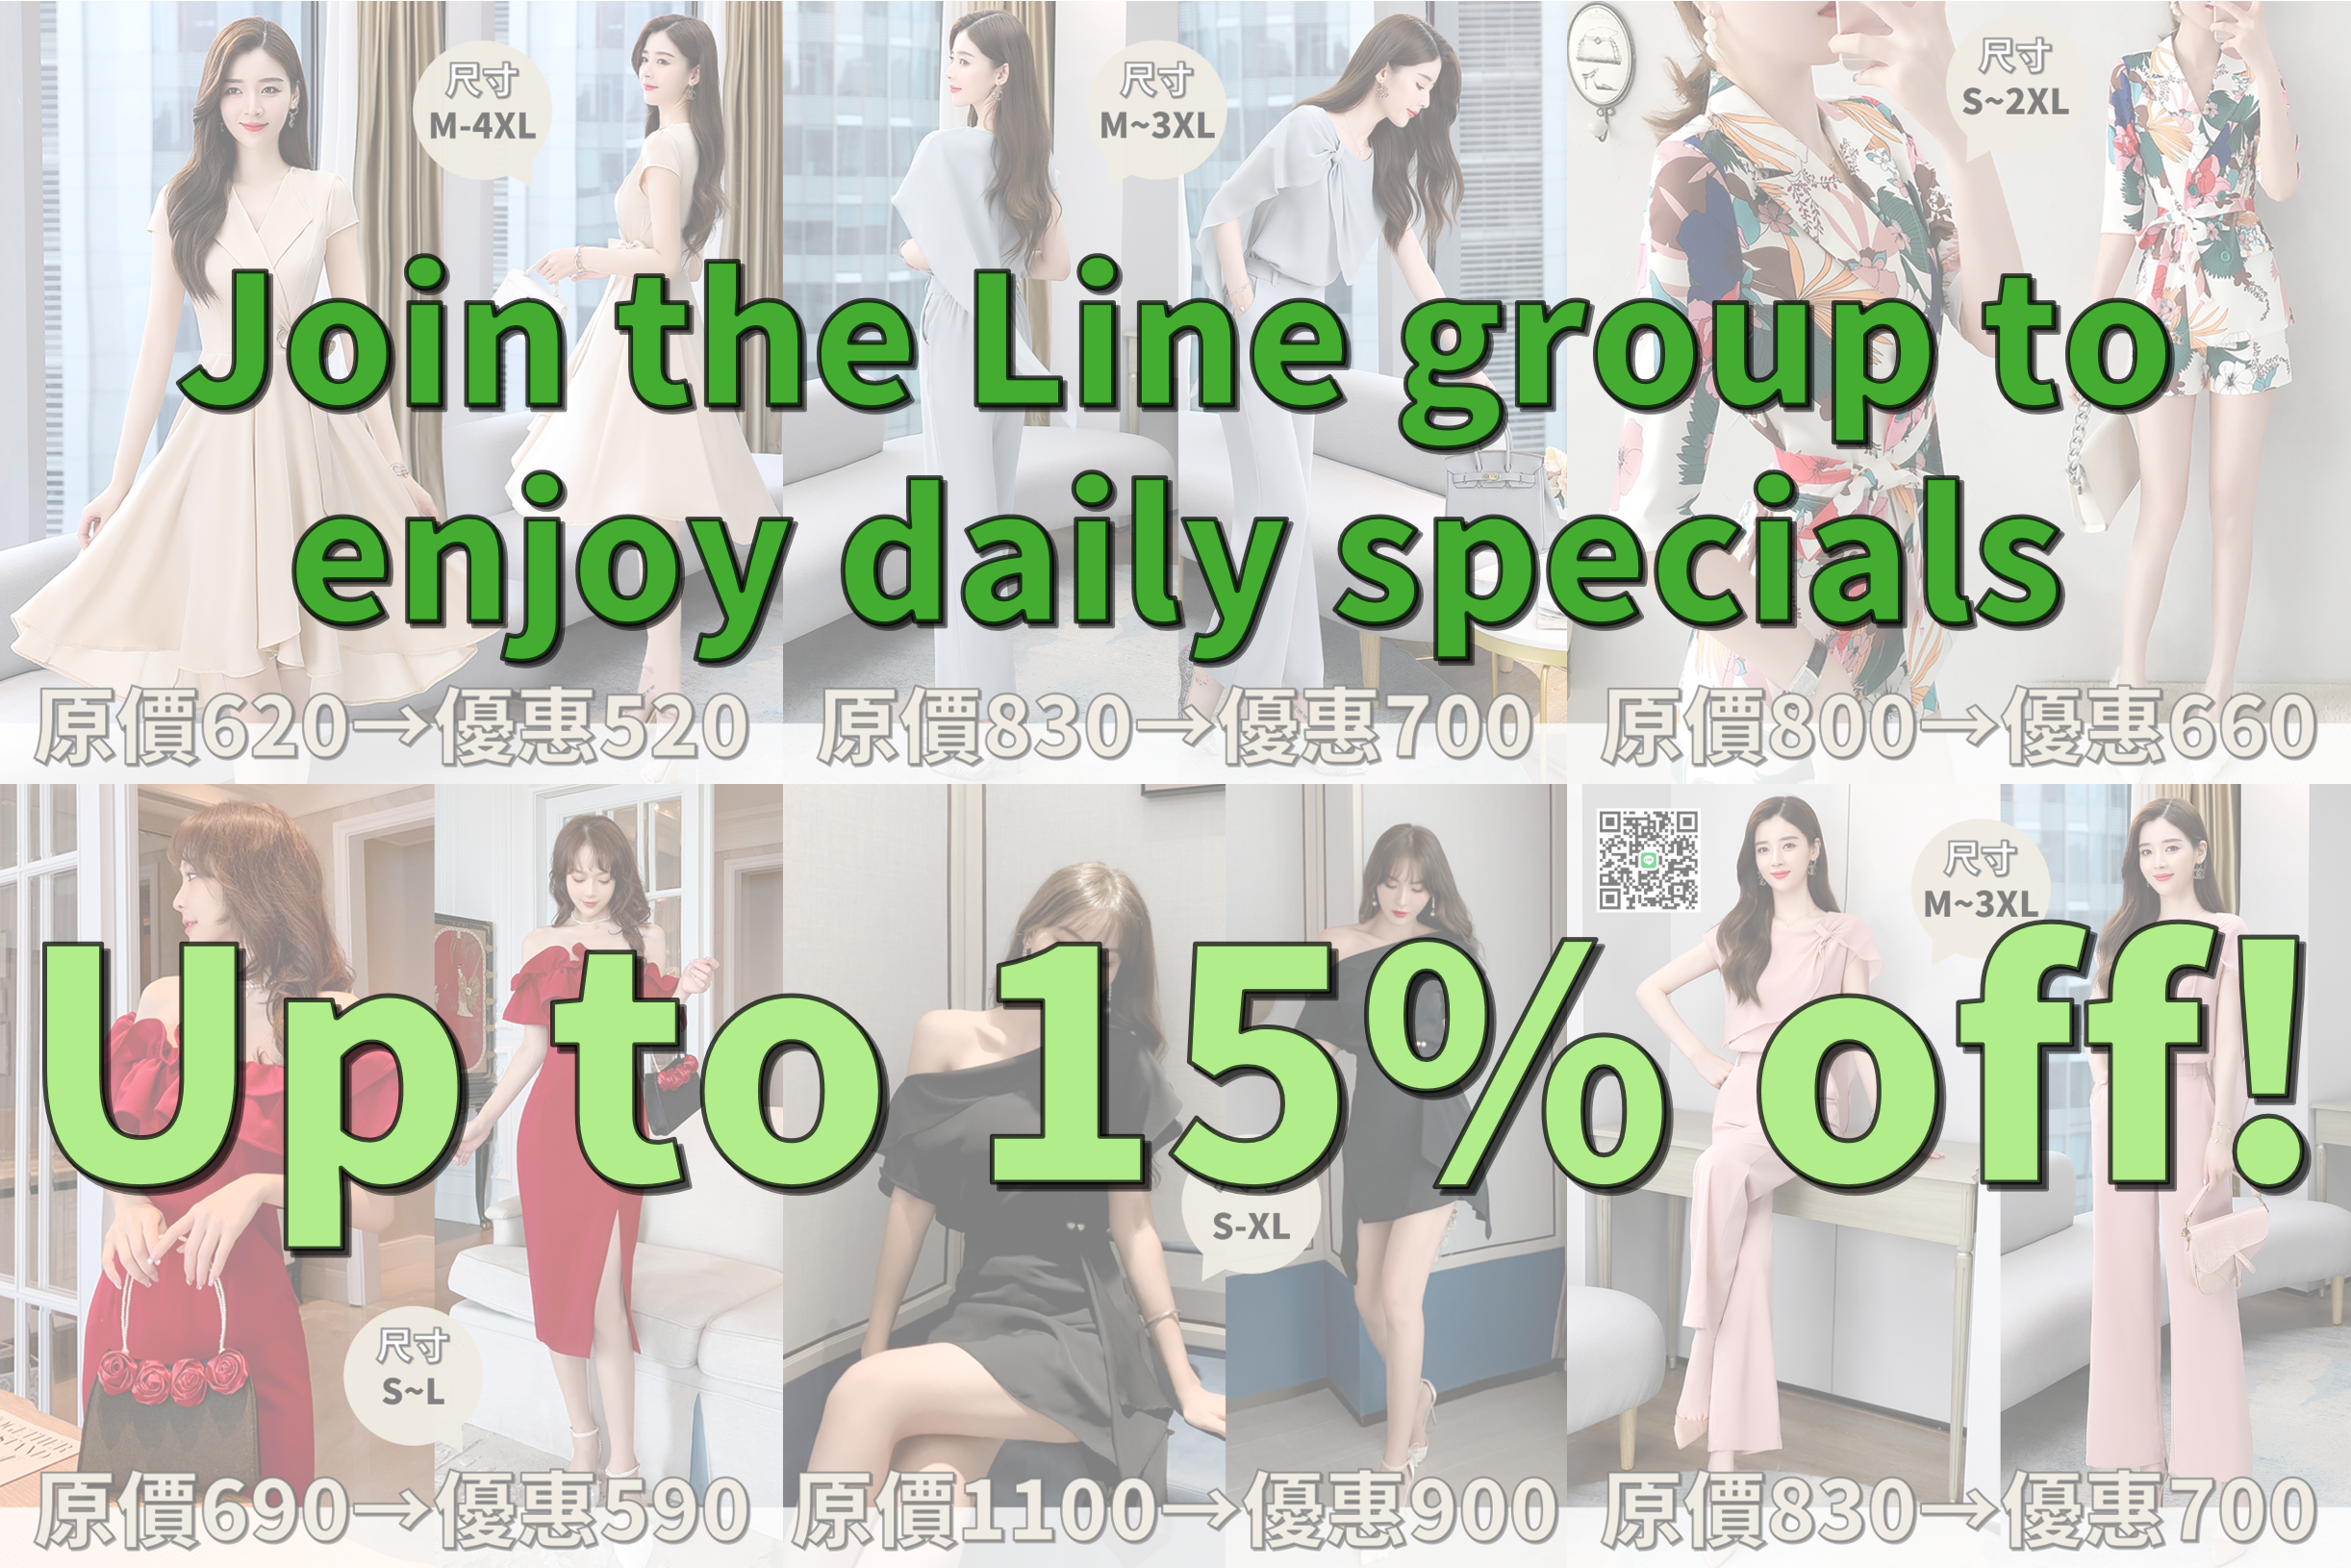 Join the Line group to enjoy daily specials. Up to 15% off!